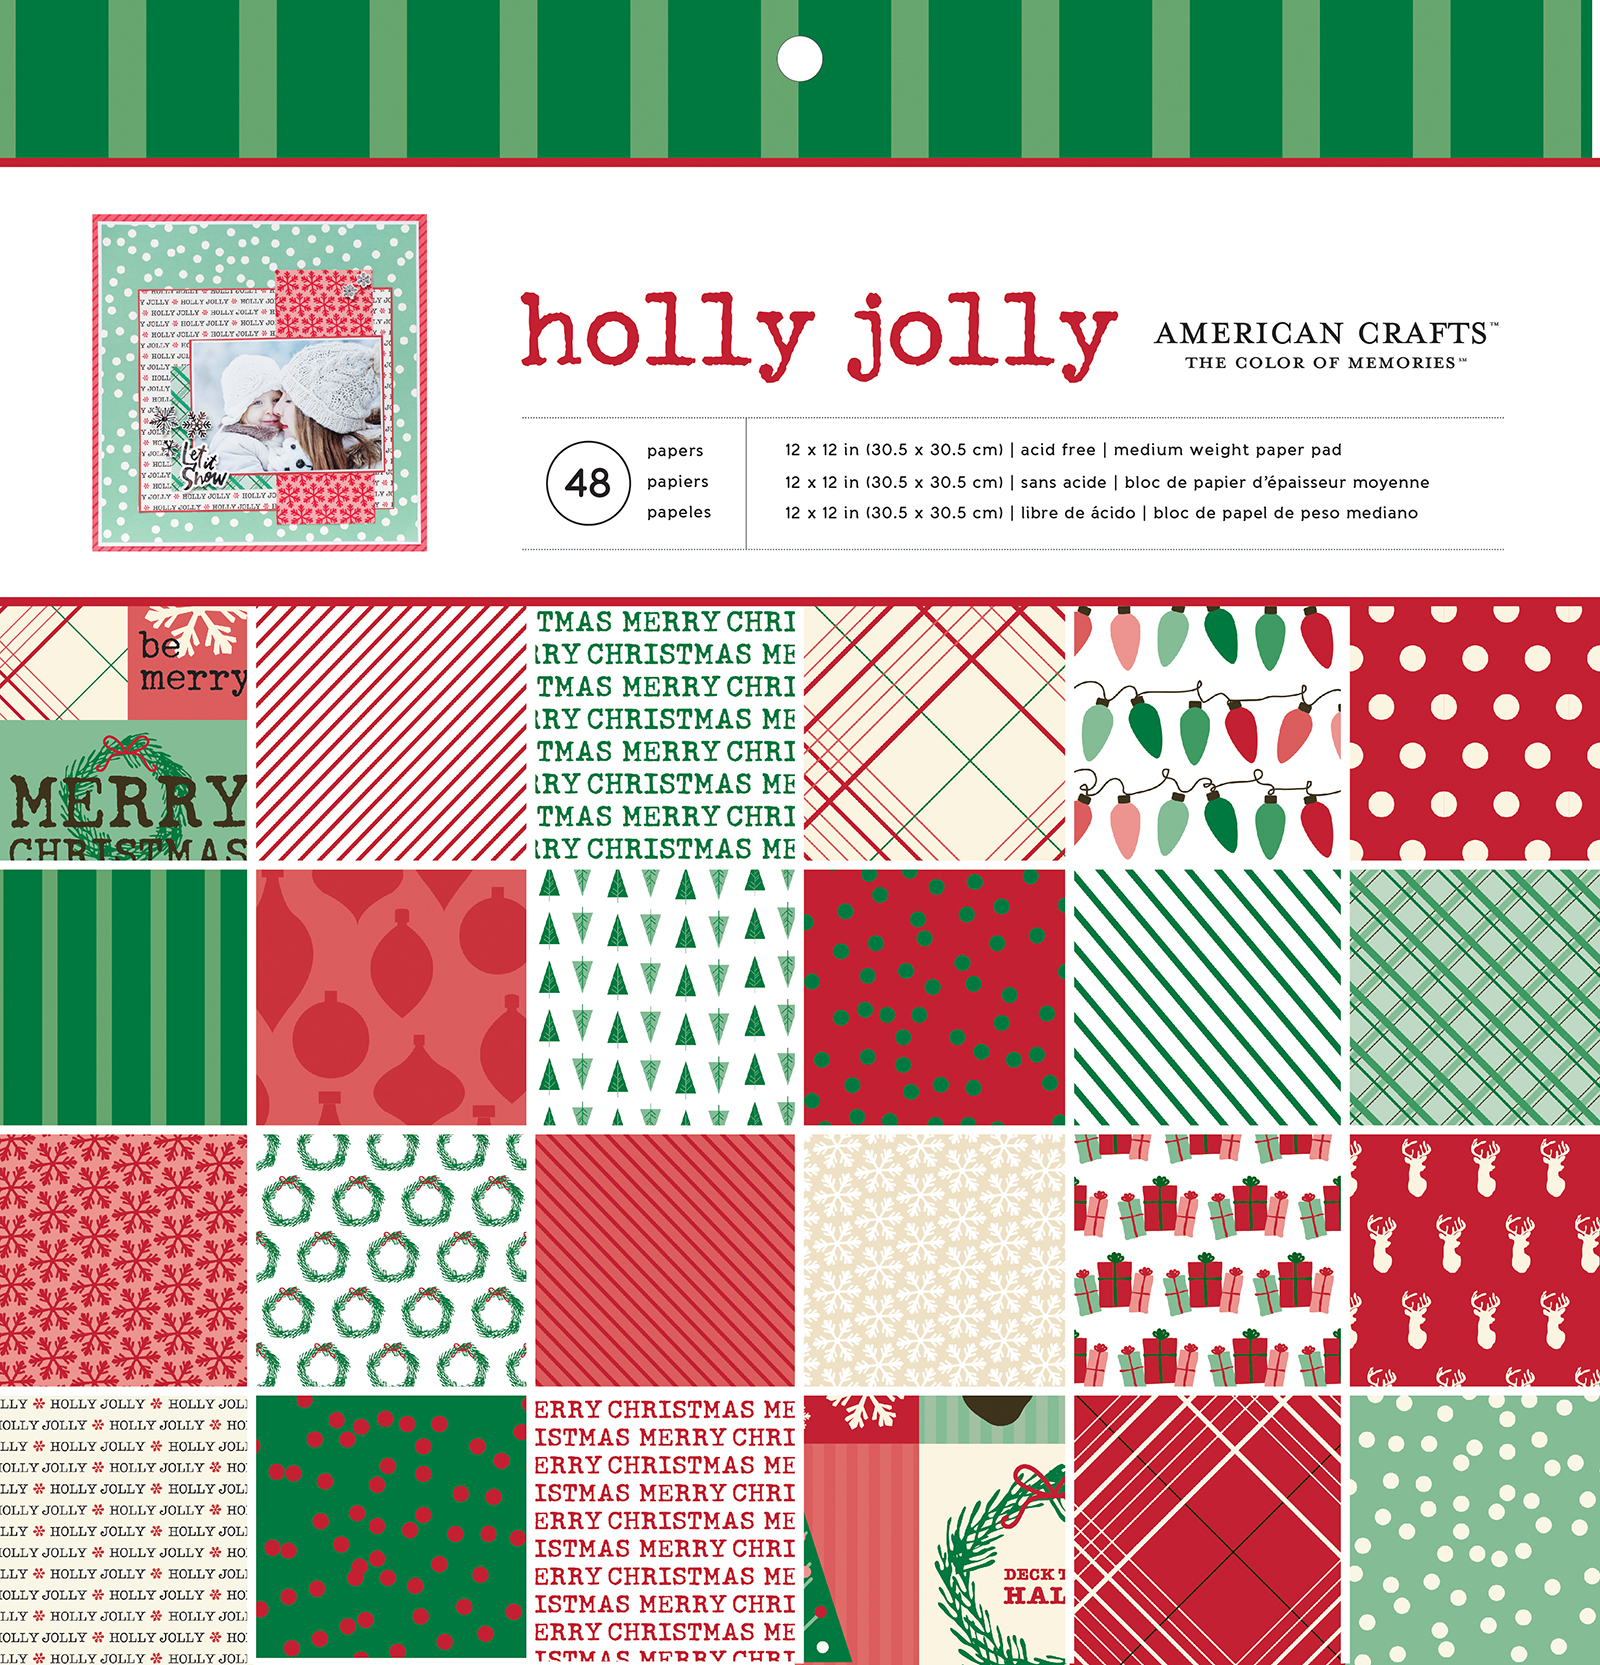 340494_ACM_12x12PaperPad_HollyJolly_PKG_Cover